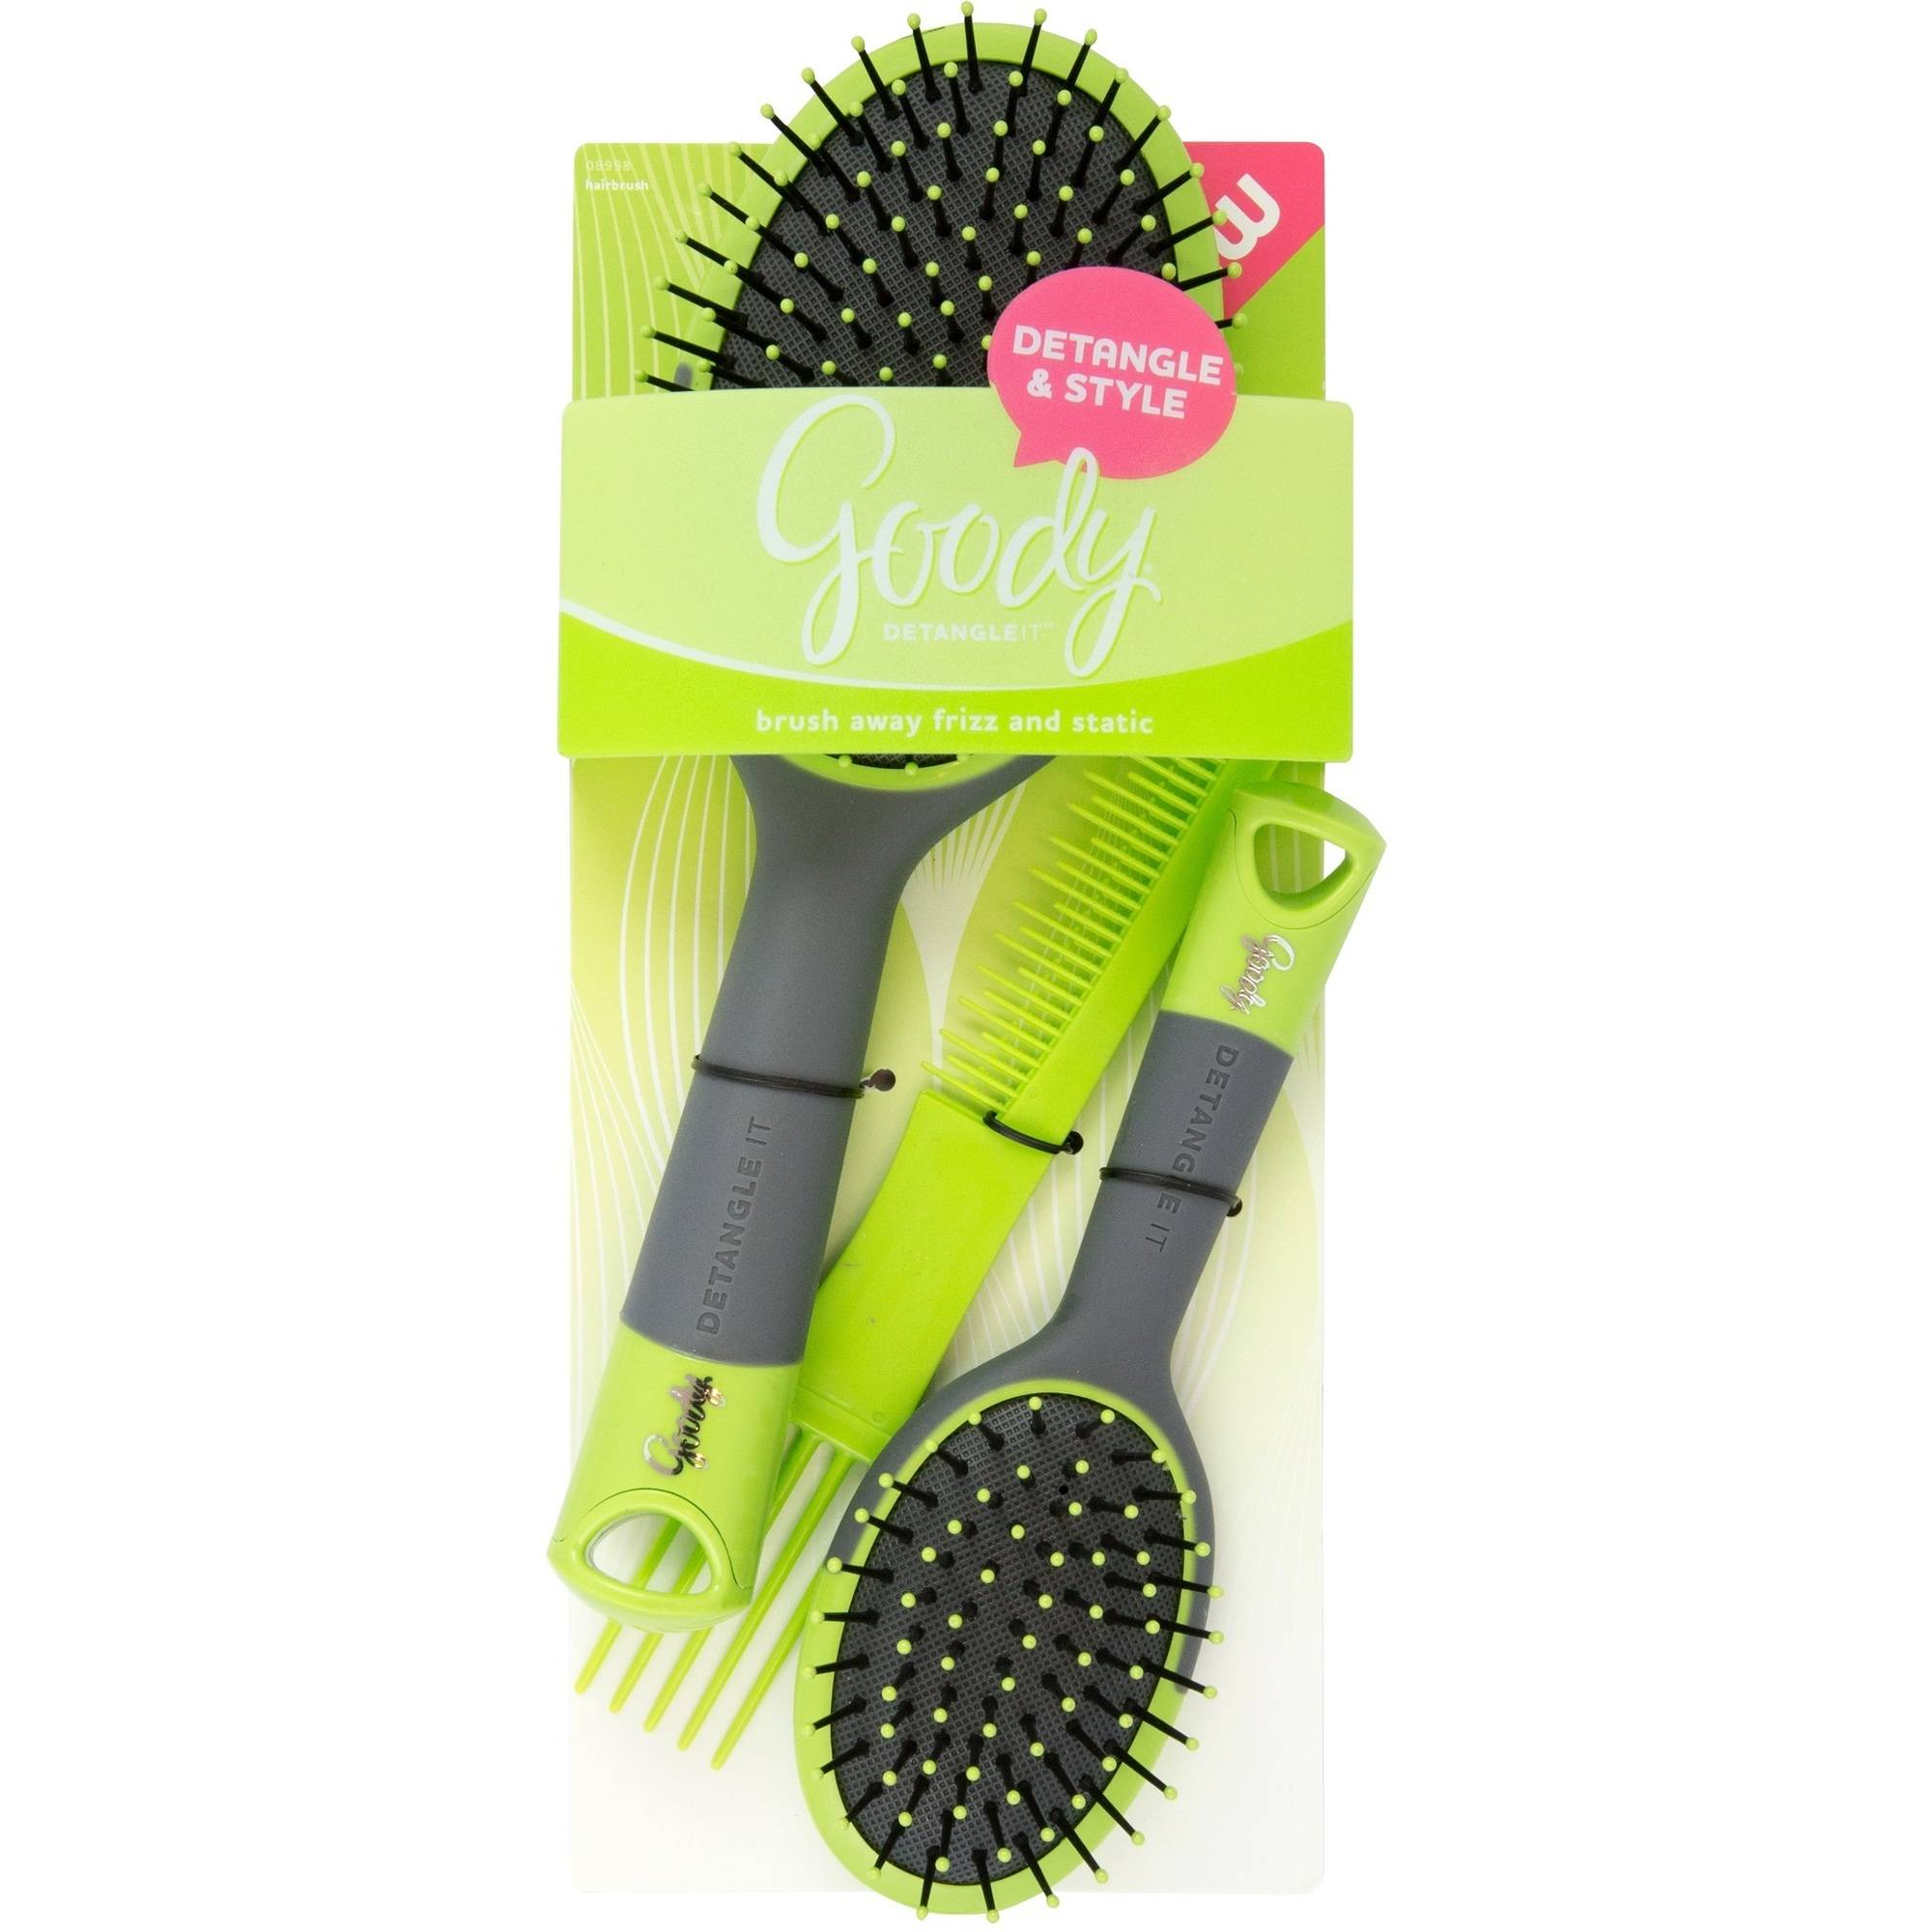 Goody Detangle It Oval Cushion Hair Brush and Comb Combo, 3 piece